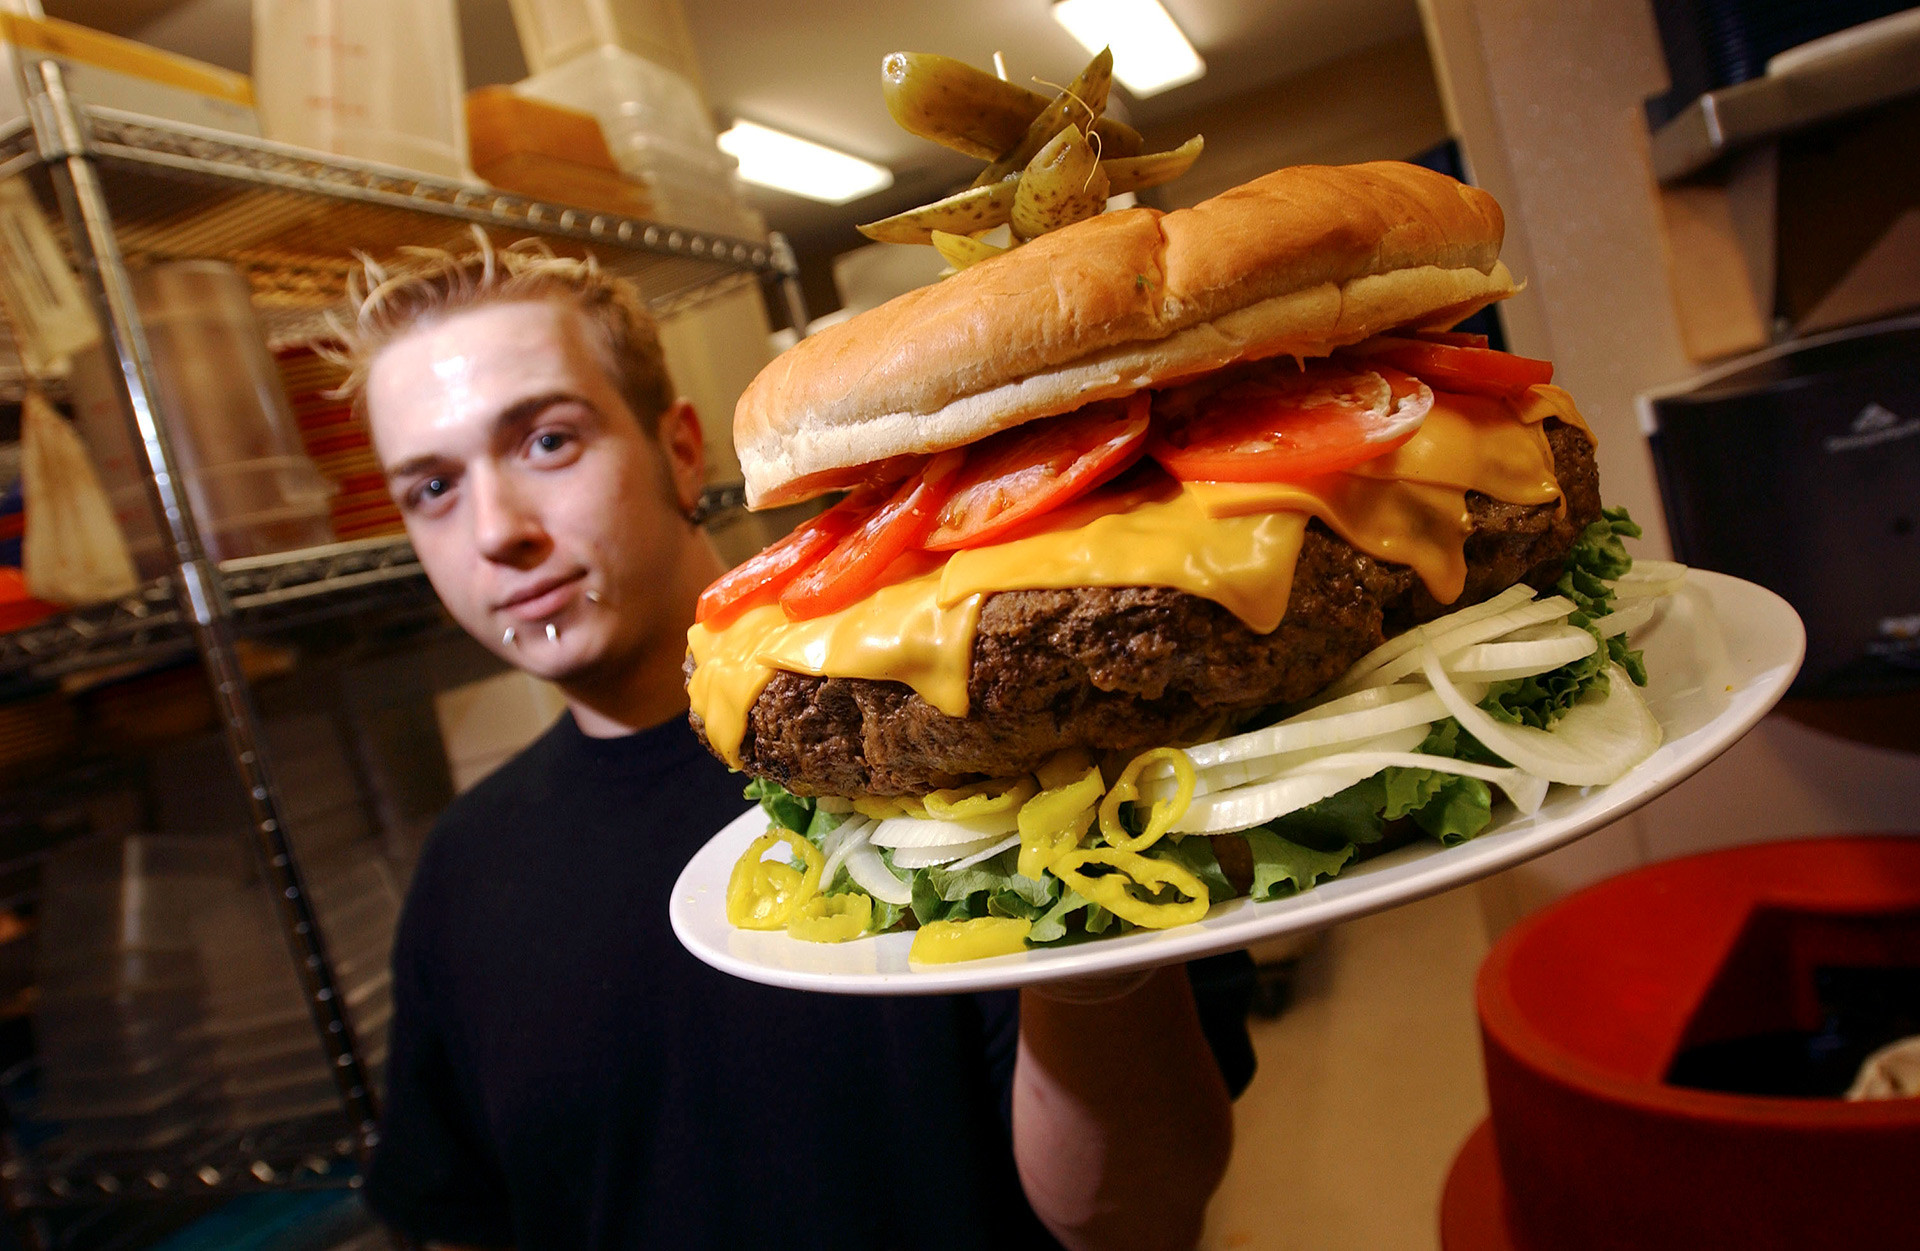 Food habits of Russians, incomprehensible to foreigners 26